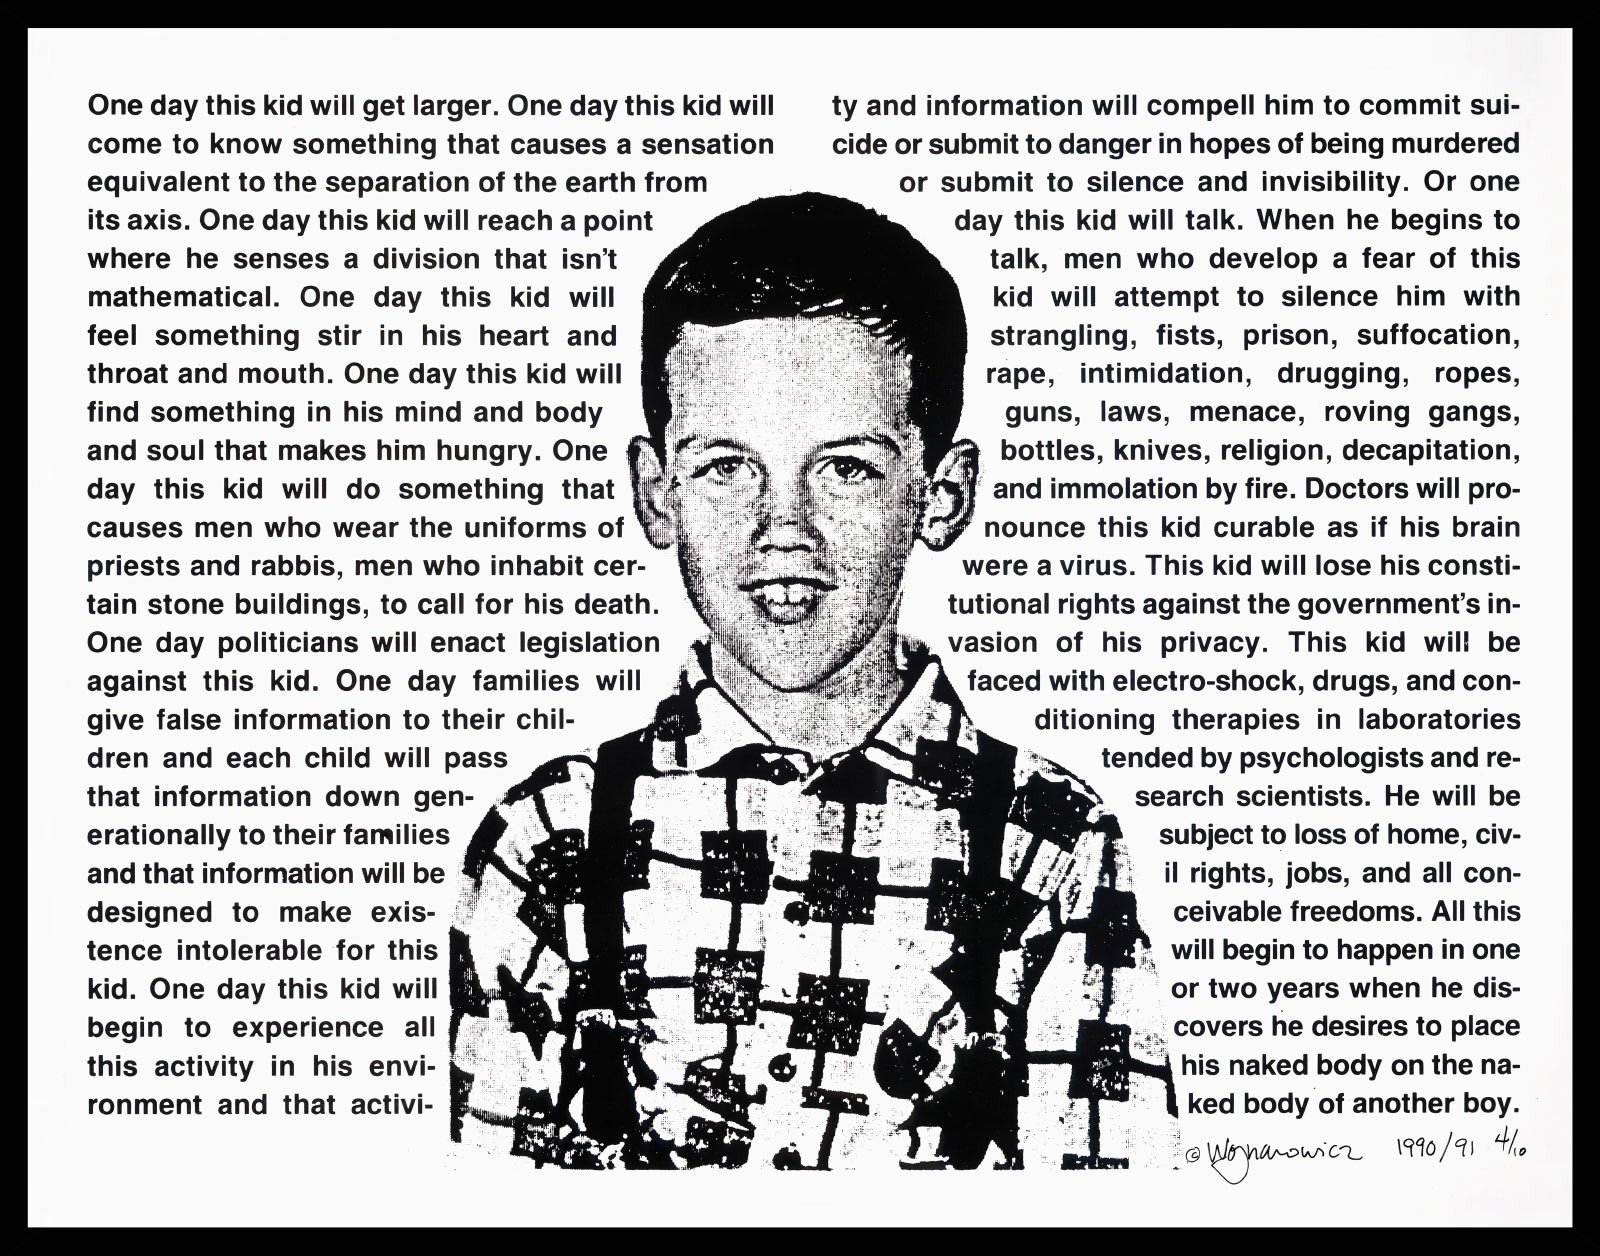 David Wojnarowicz, Untitled (One day this kid…) 1990, Photostat